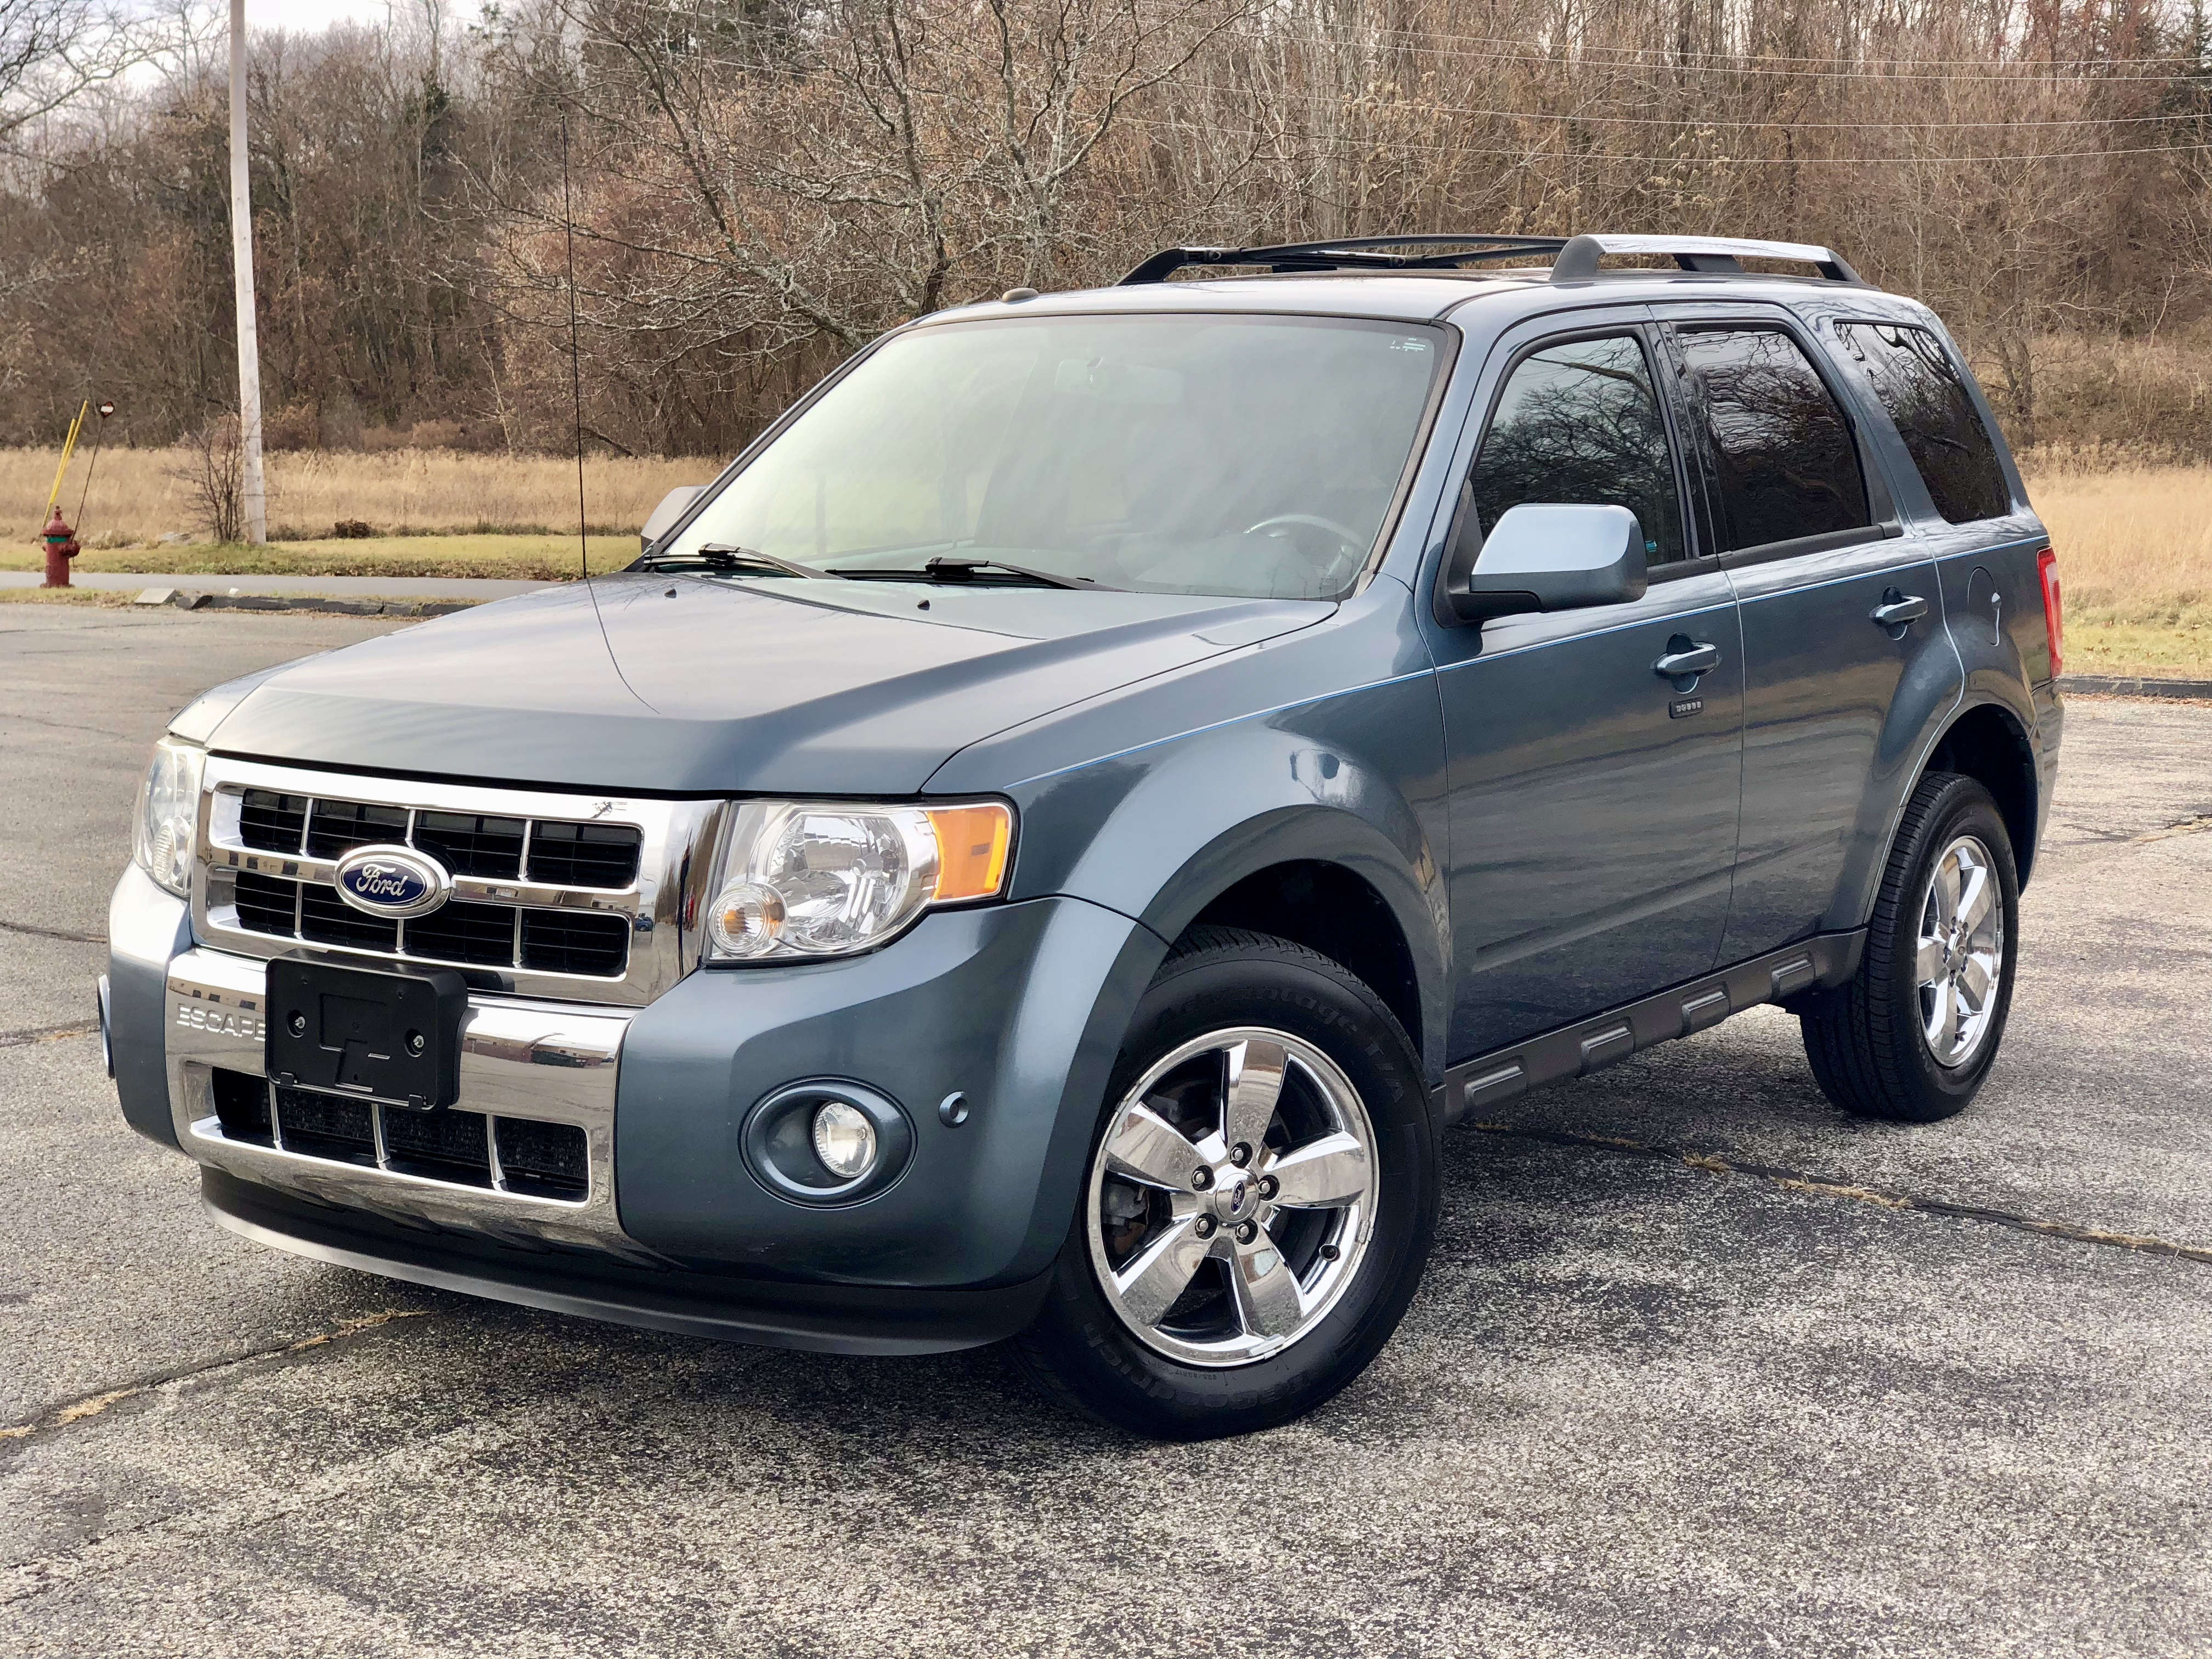 2011 ford escape xlt suv from used ford escape for sale near me source pinterest